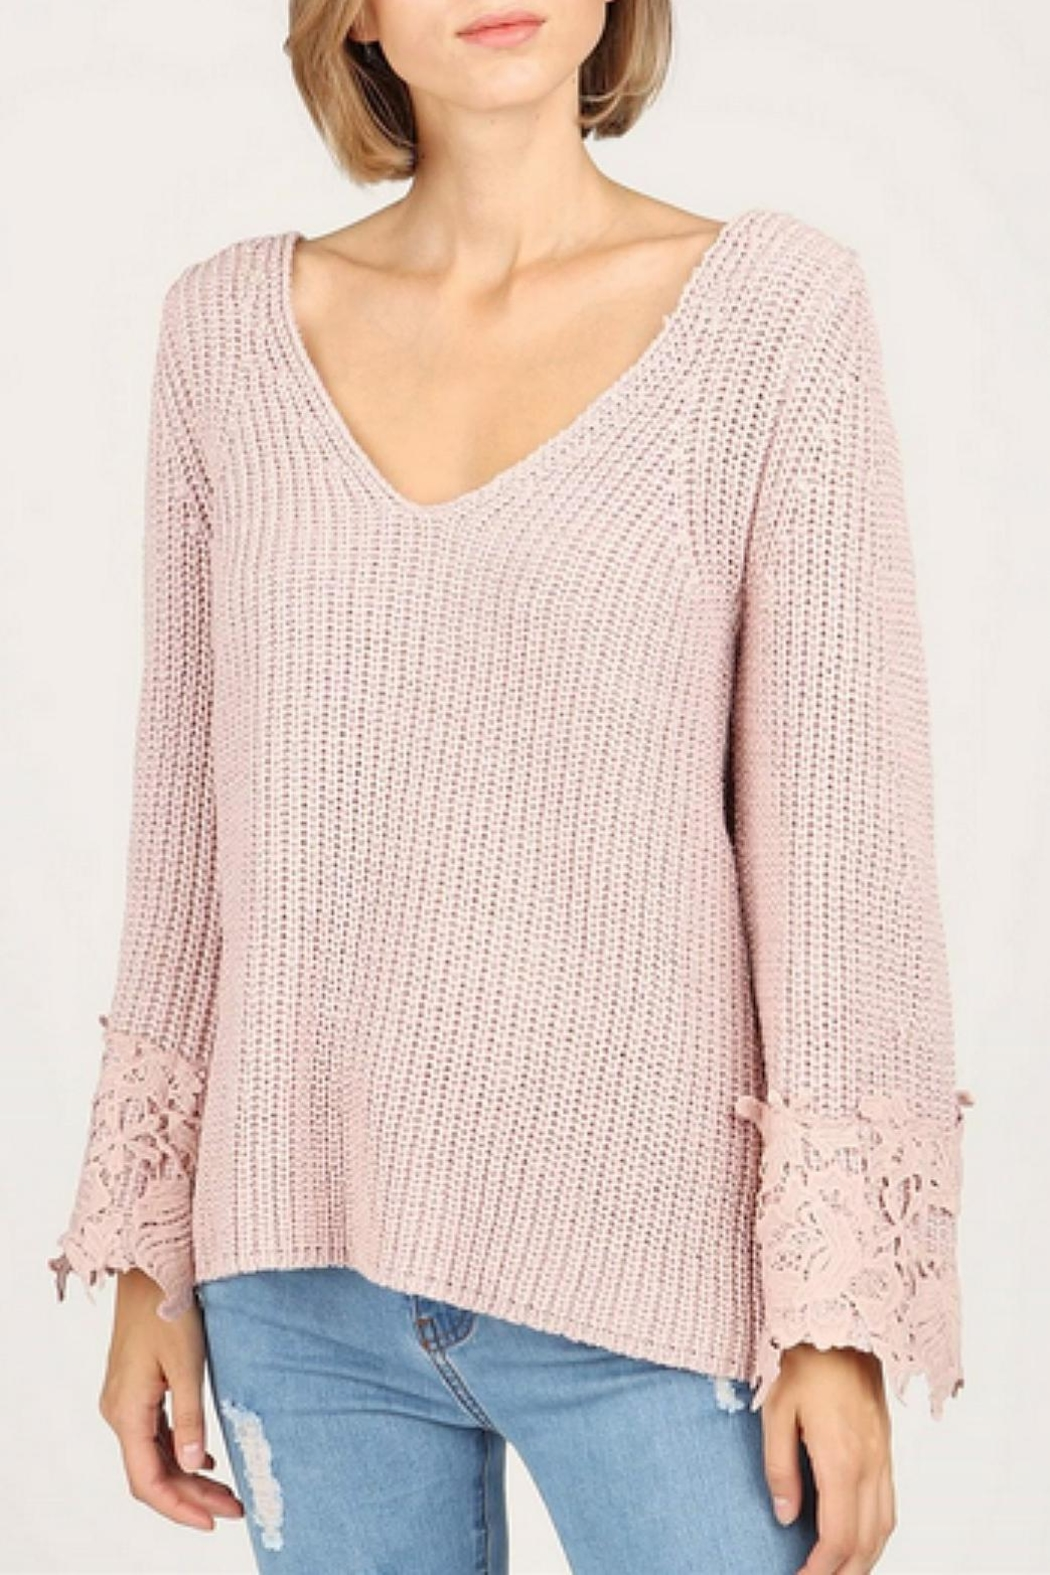 POL Pol Crochet Sweater - Front Cropped Image